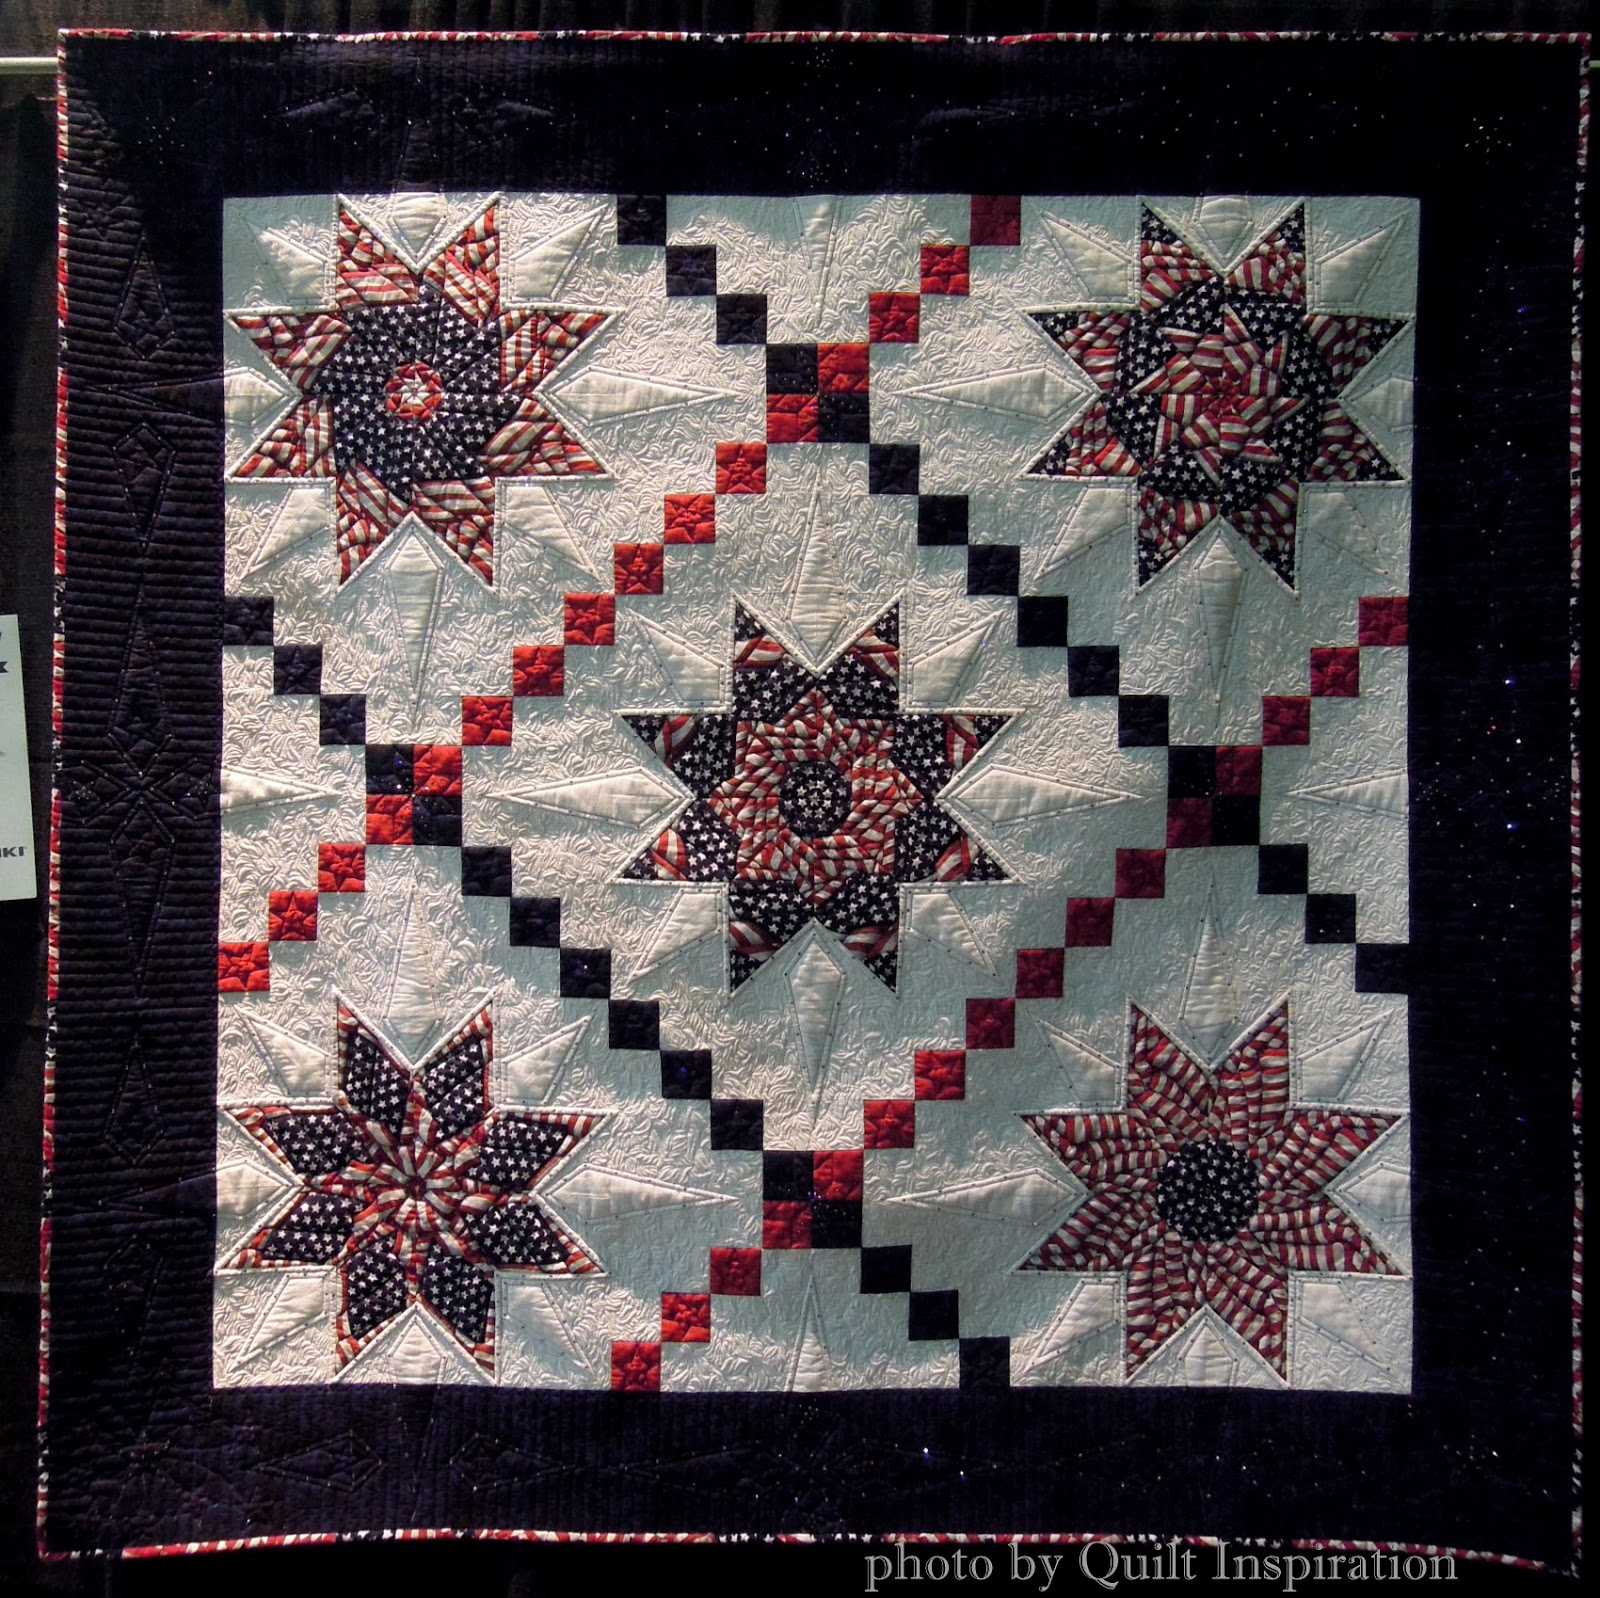 Quilt Inspiration: Fourth of July 2015 : fourth of july quilt pattern - Adamdwight.com